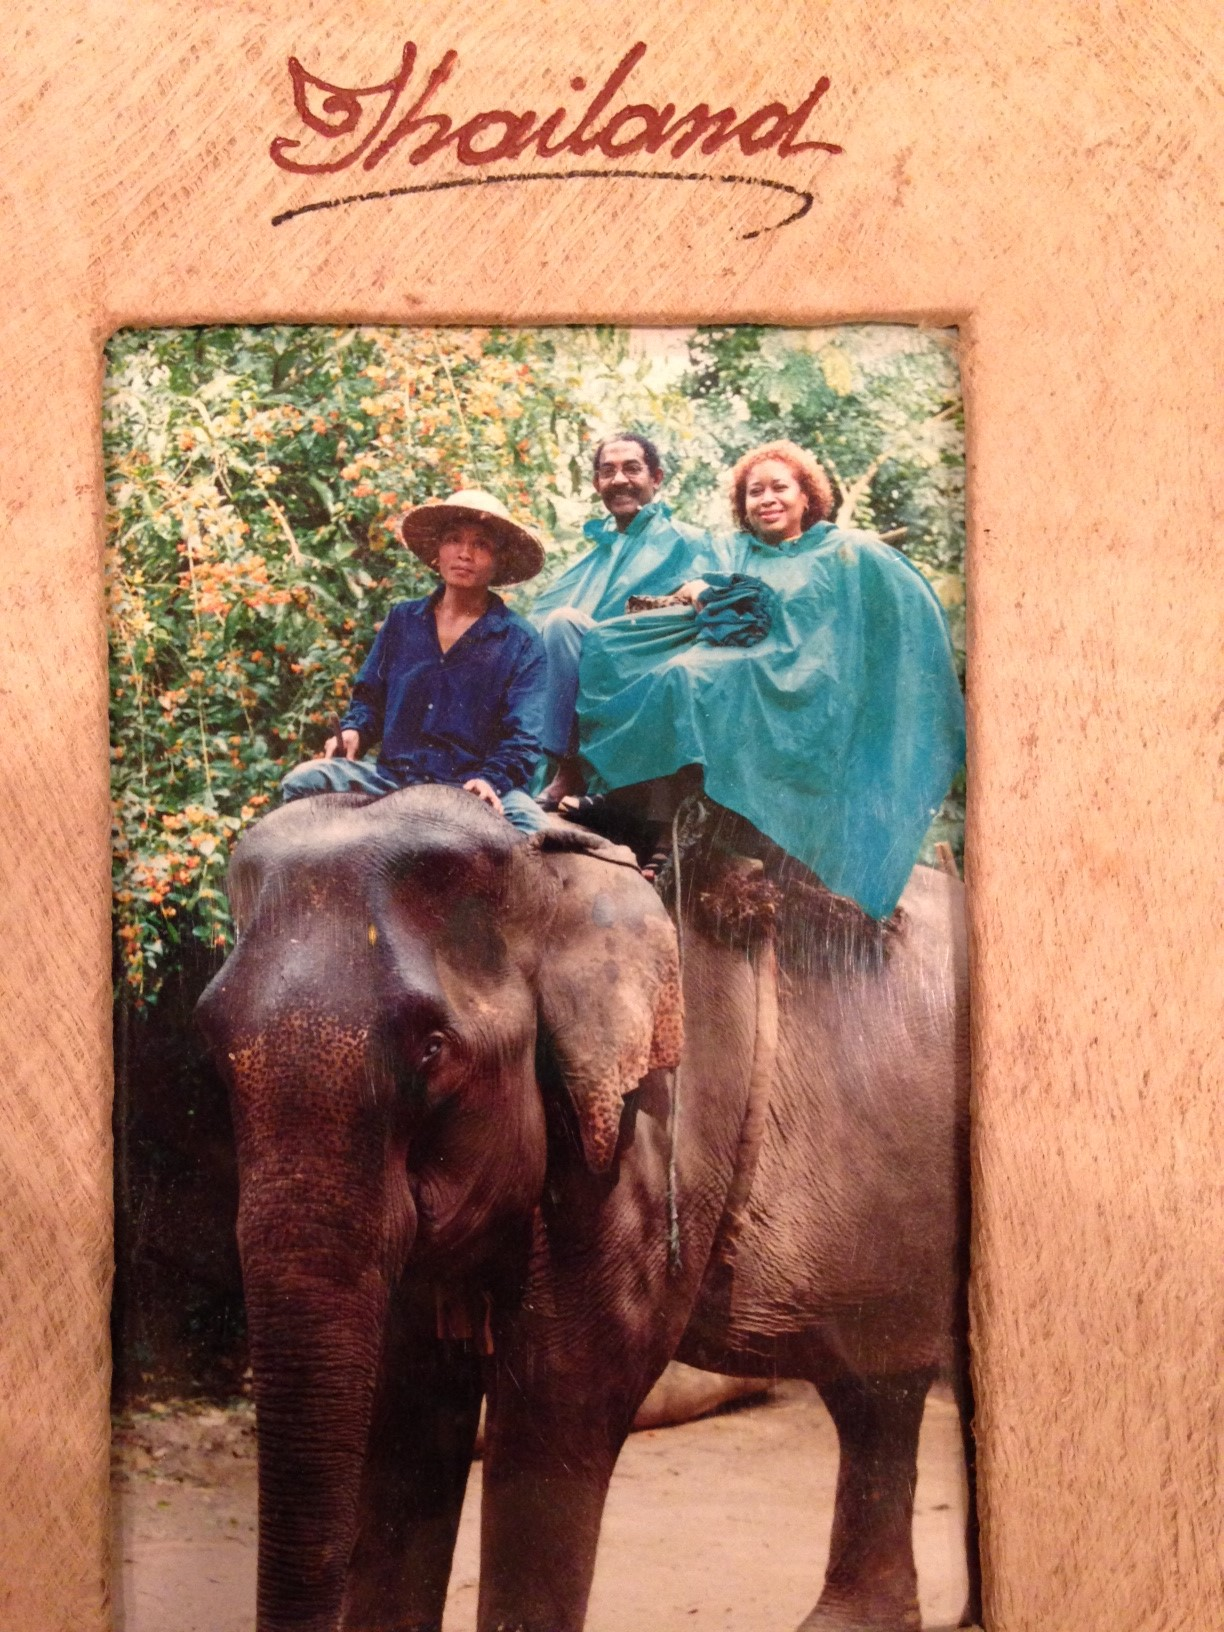 My Mother with a good family friend riding an elephant in Thailand!